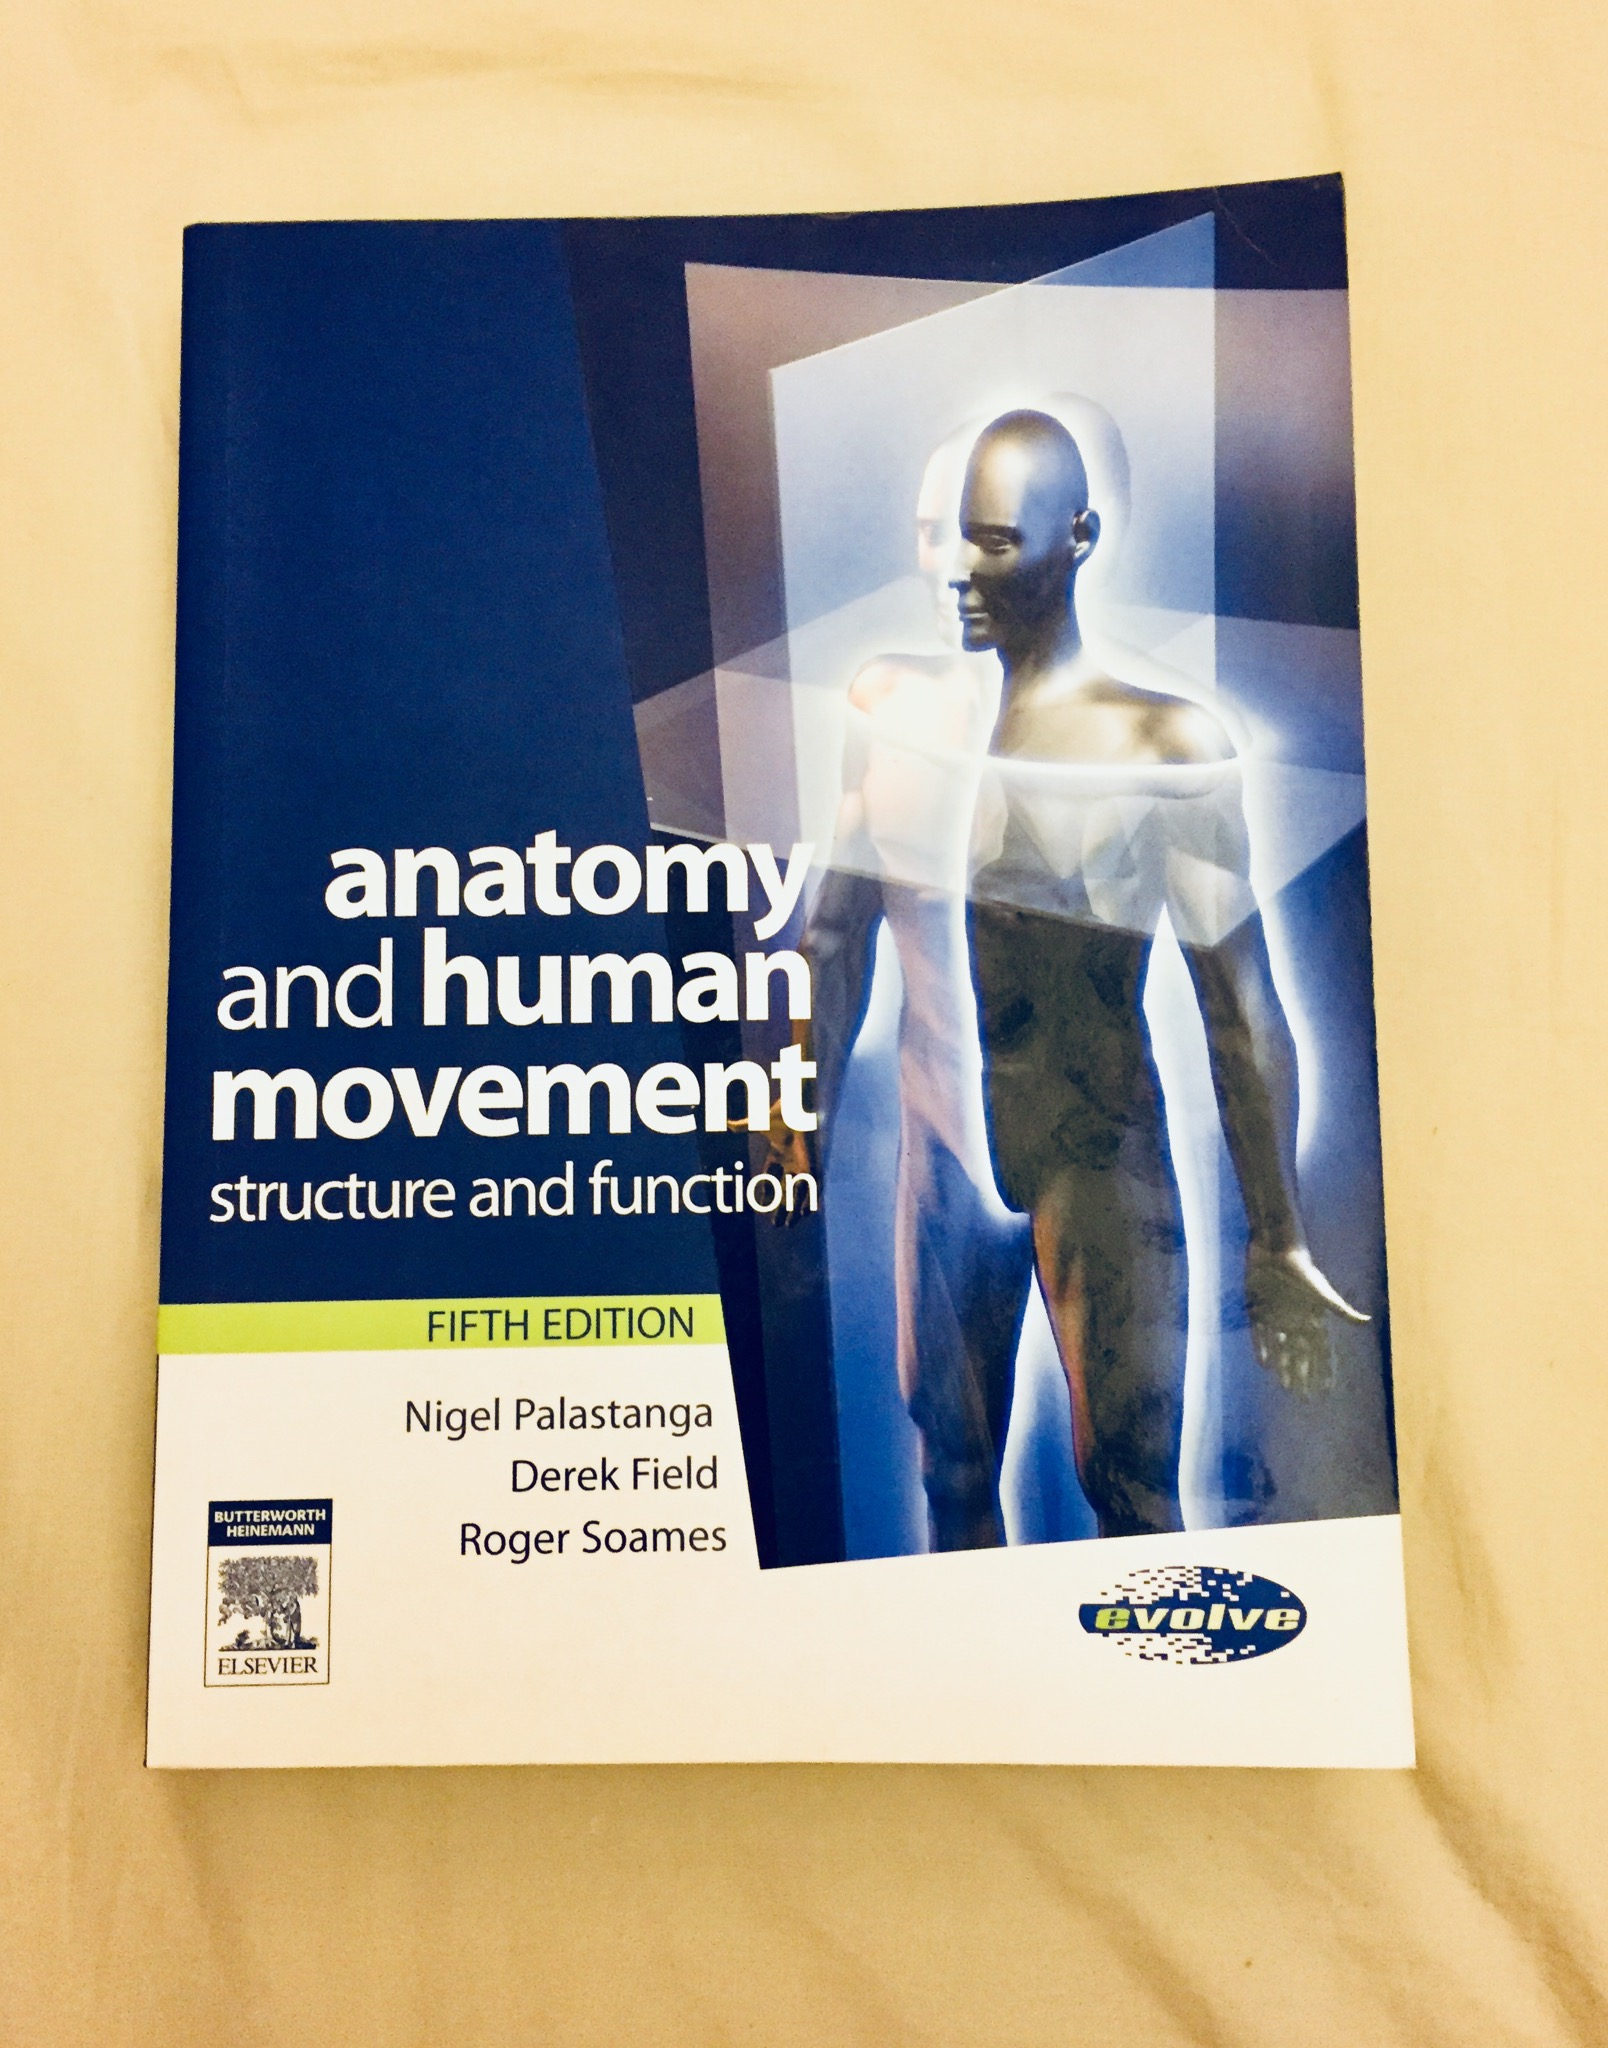 Anatomy And Human Movement Structure And Function Fifth Edition